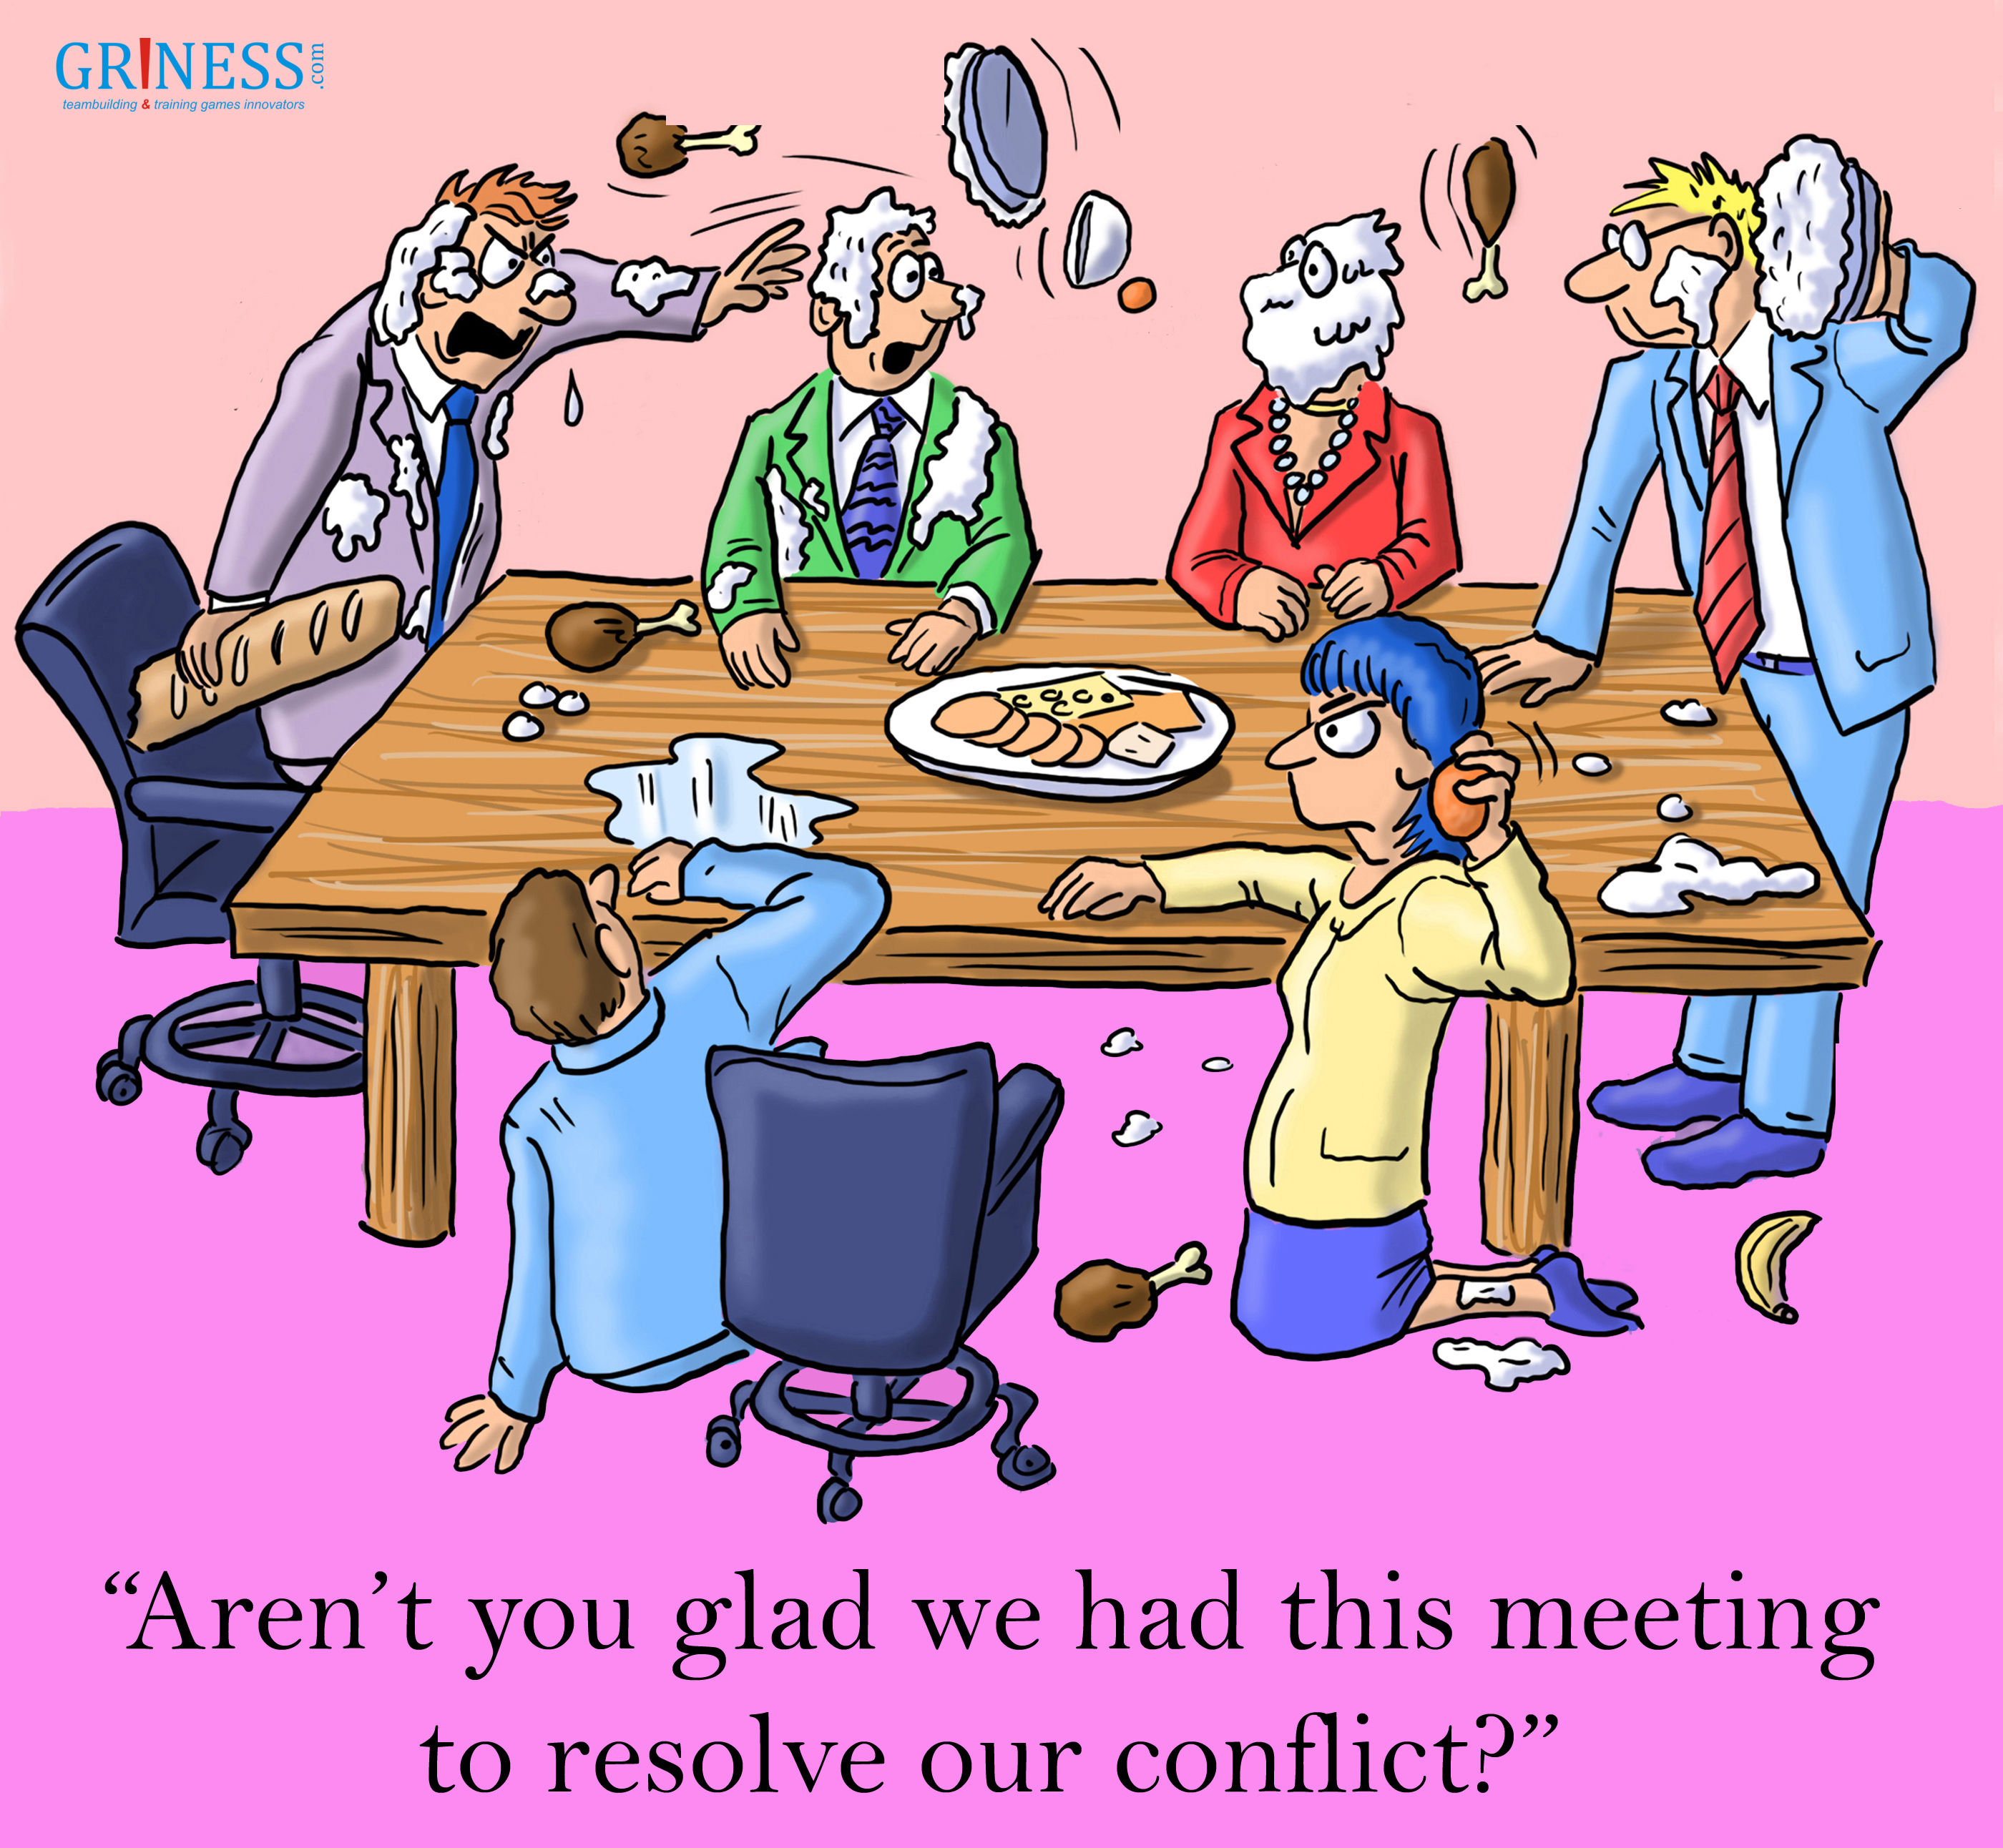 meeting to resolve our conflict